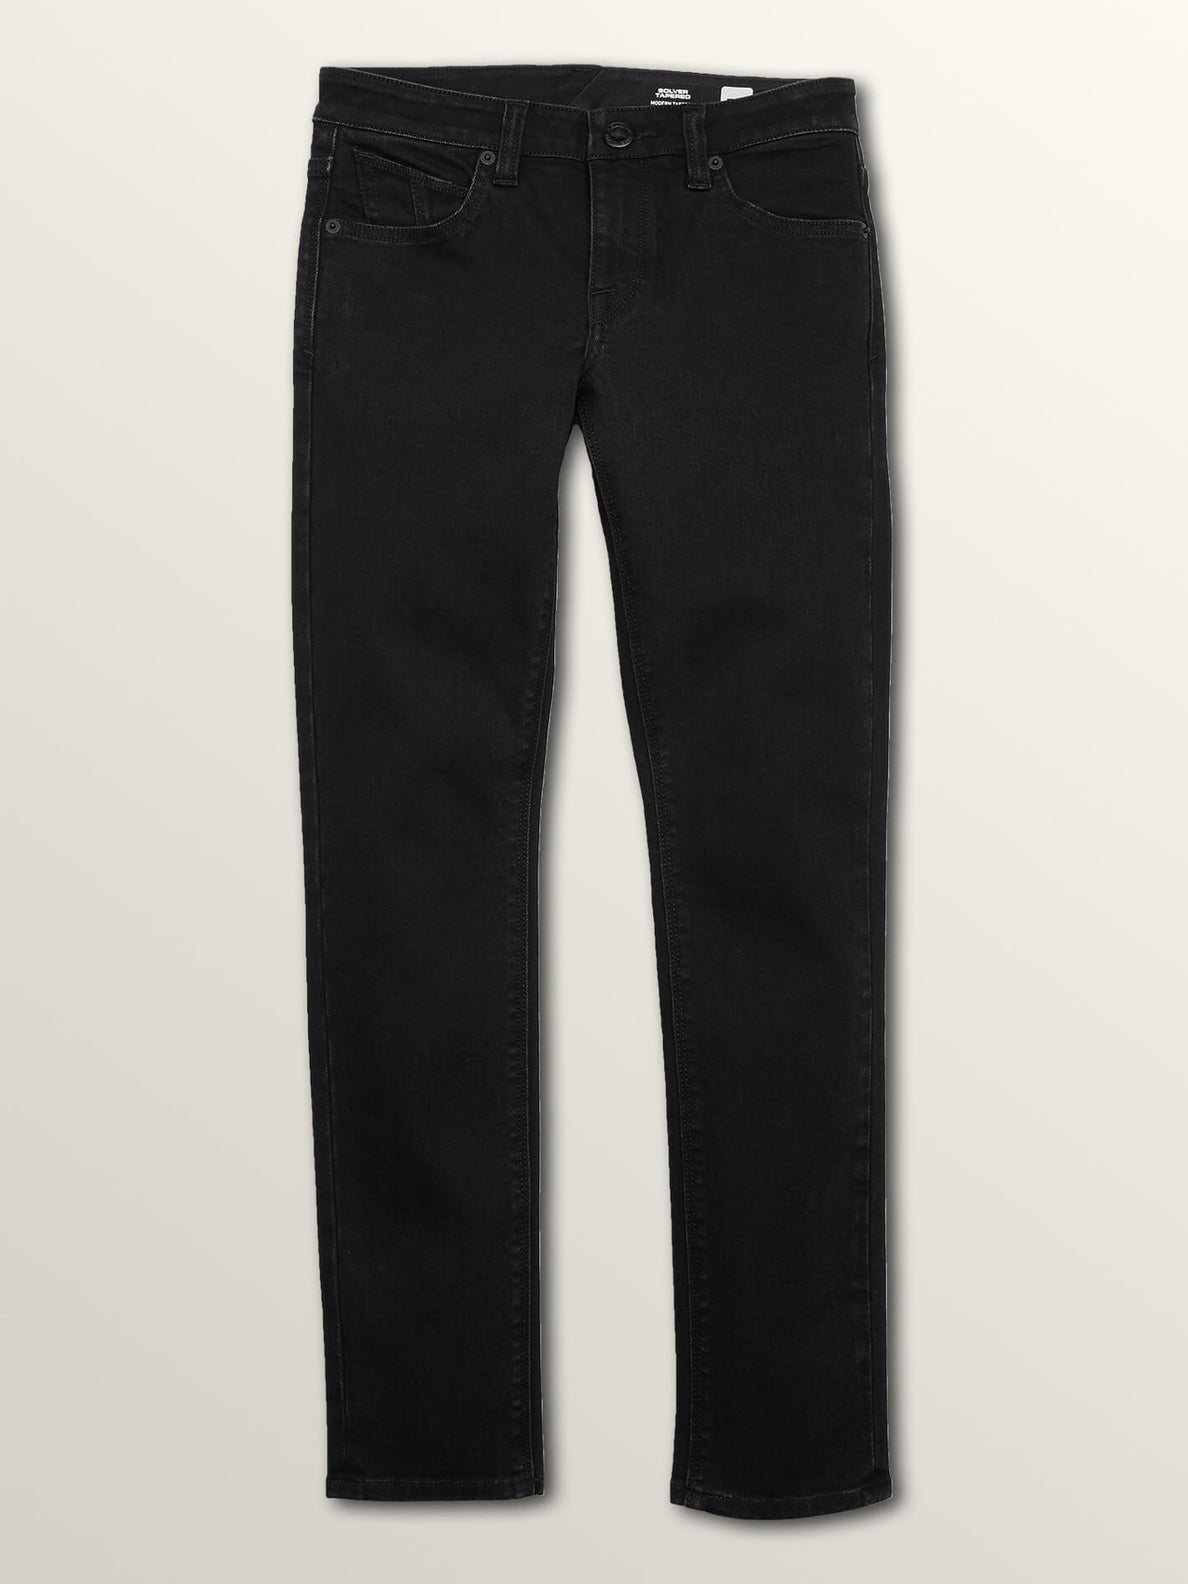 Big Boys Solver Modern Tapered Jeans In Blackout, Front View